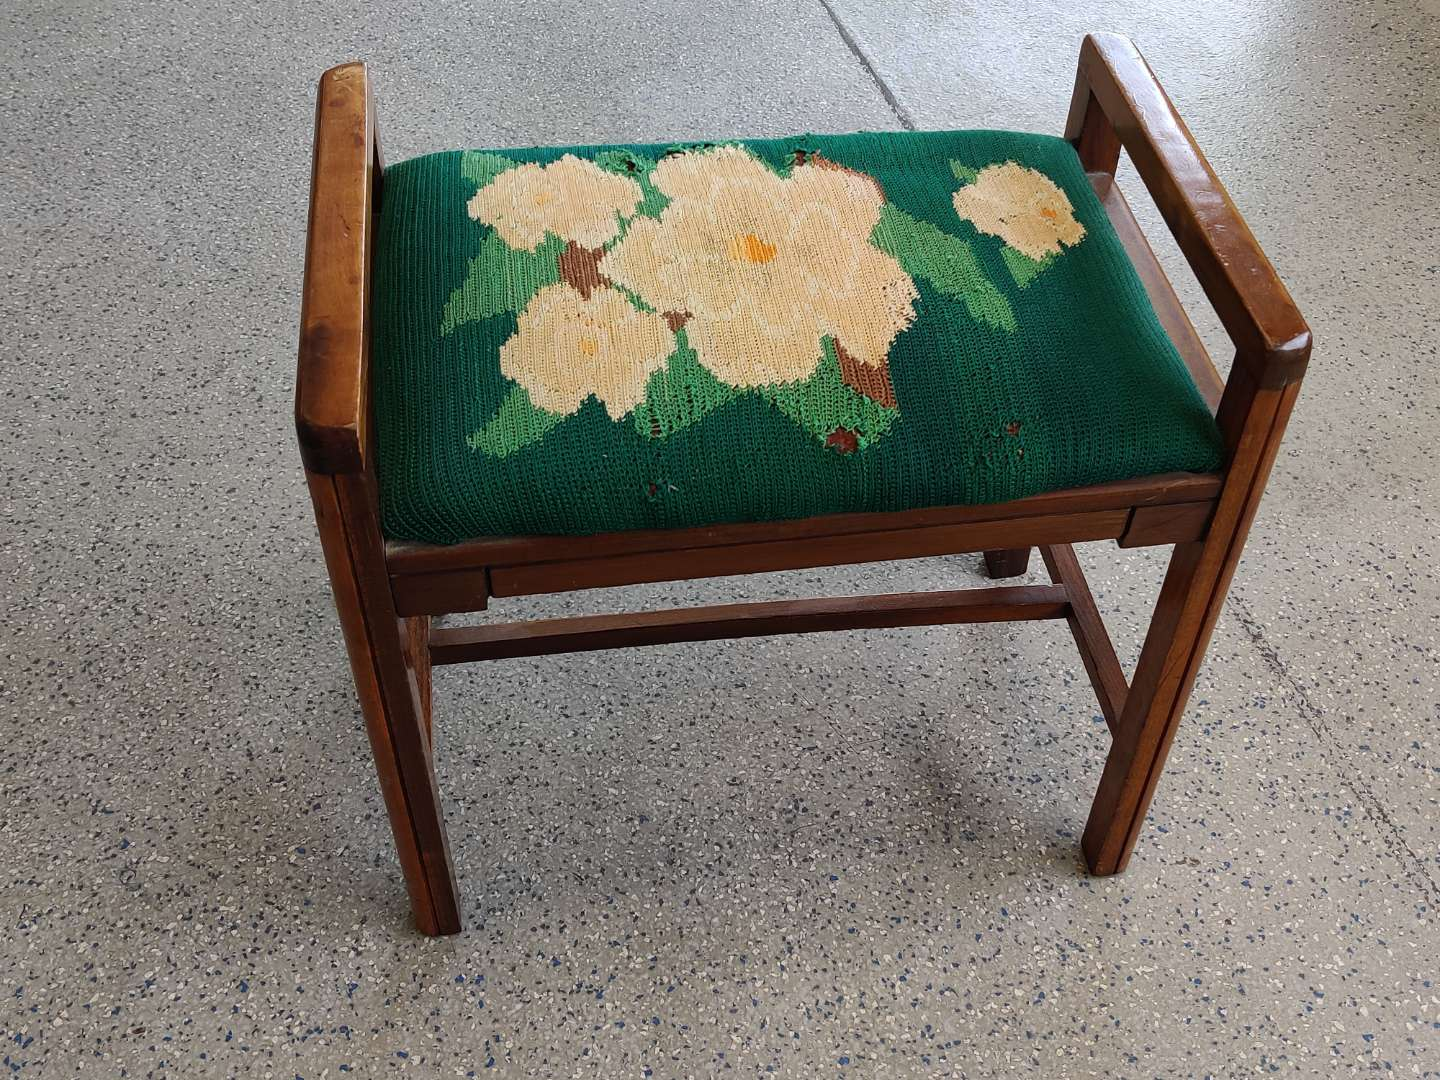 # 94 art Deco vanity stool 22 inches wide some tears and upholstery need to be reupholstered